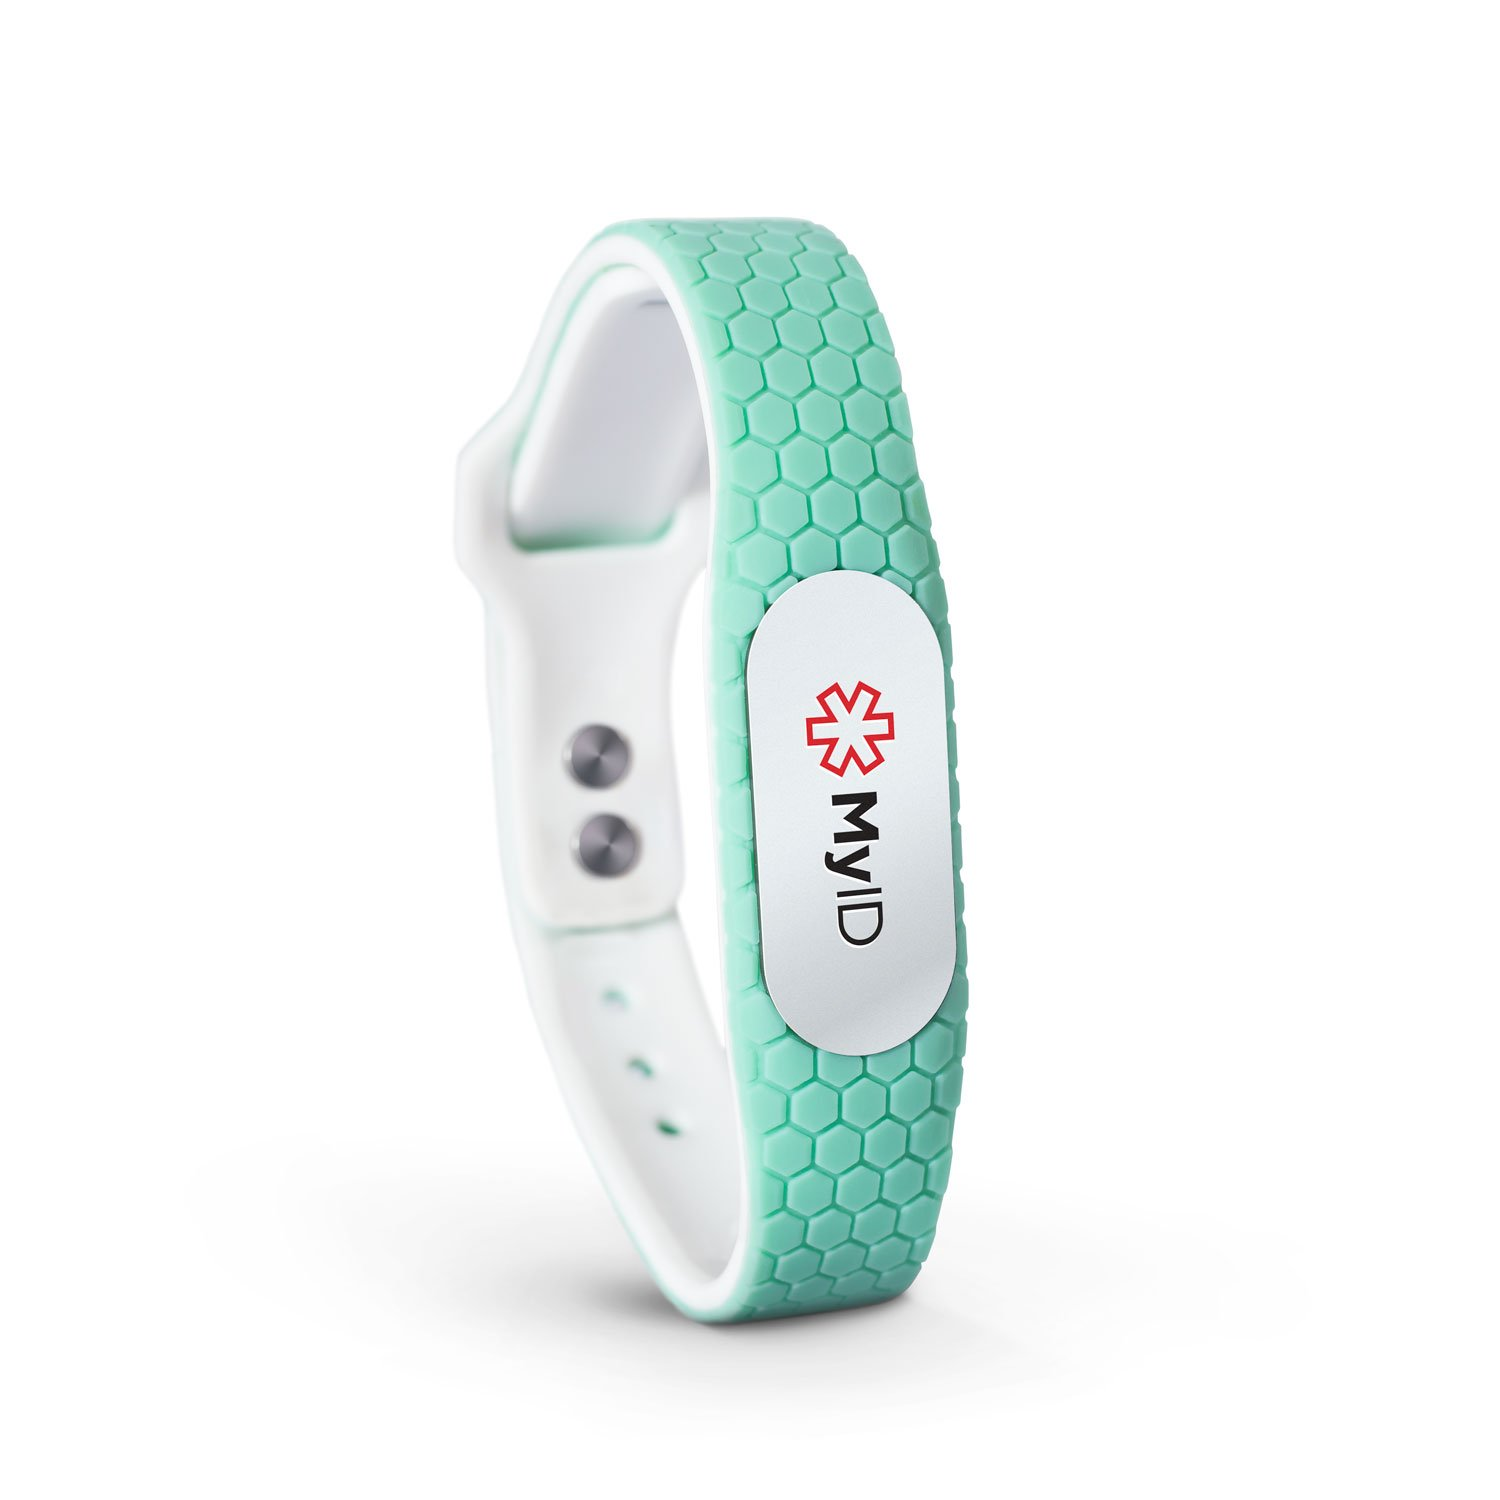 MyID Hive Medical ID Bracelet - Mint